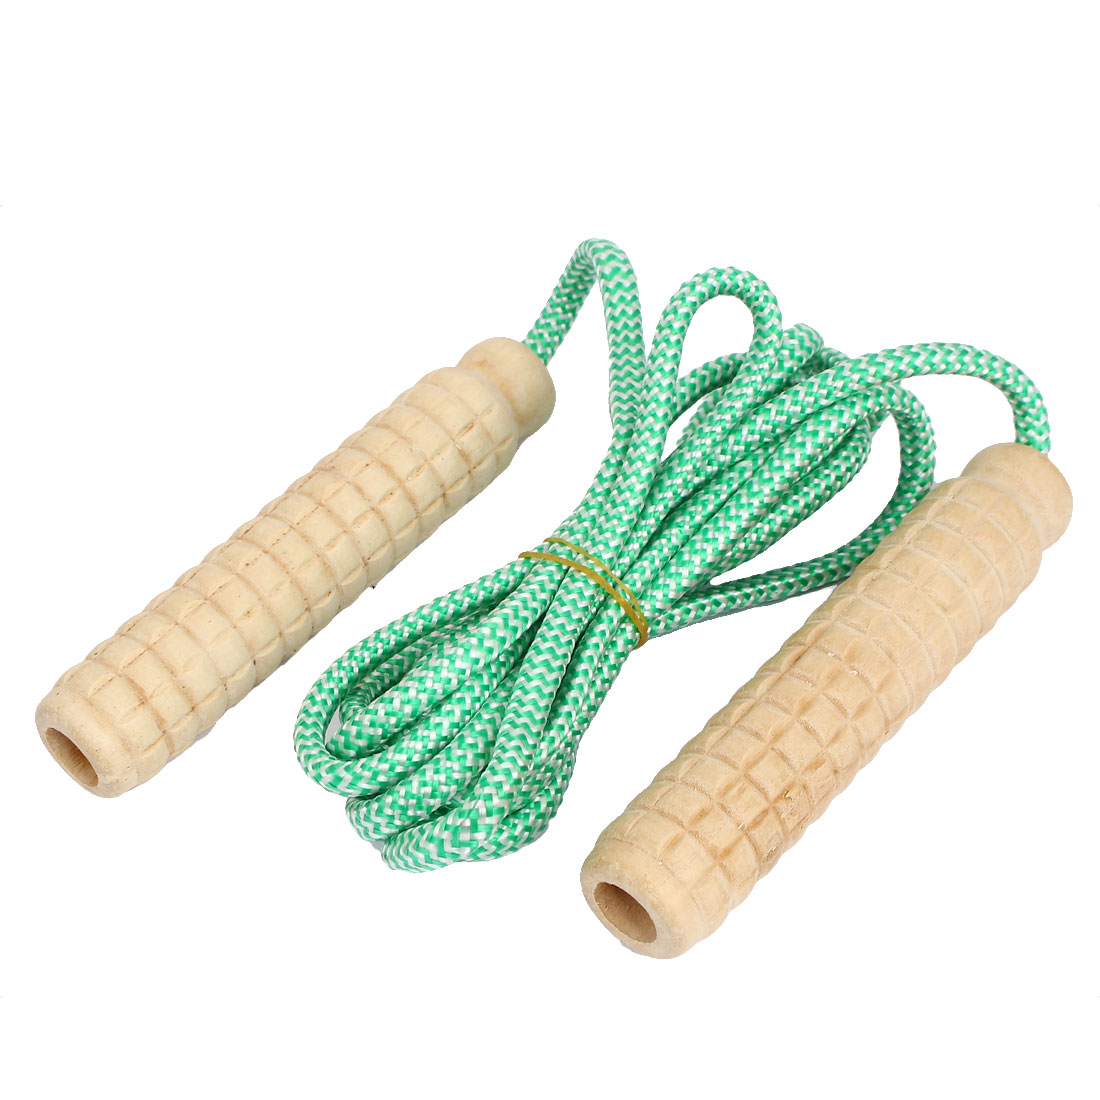 Plasitc Handle Exercise Adjustable Skipping Jump Rope Green 2.3Meter Length